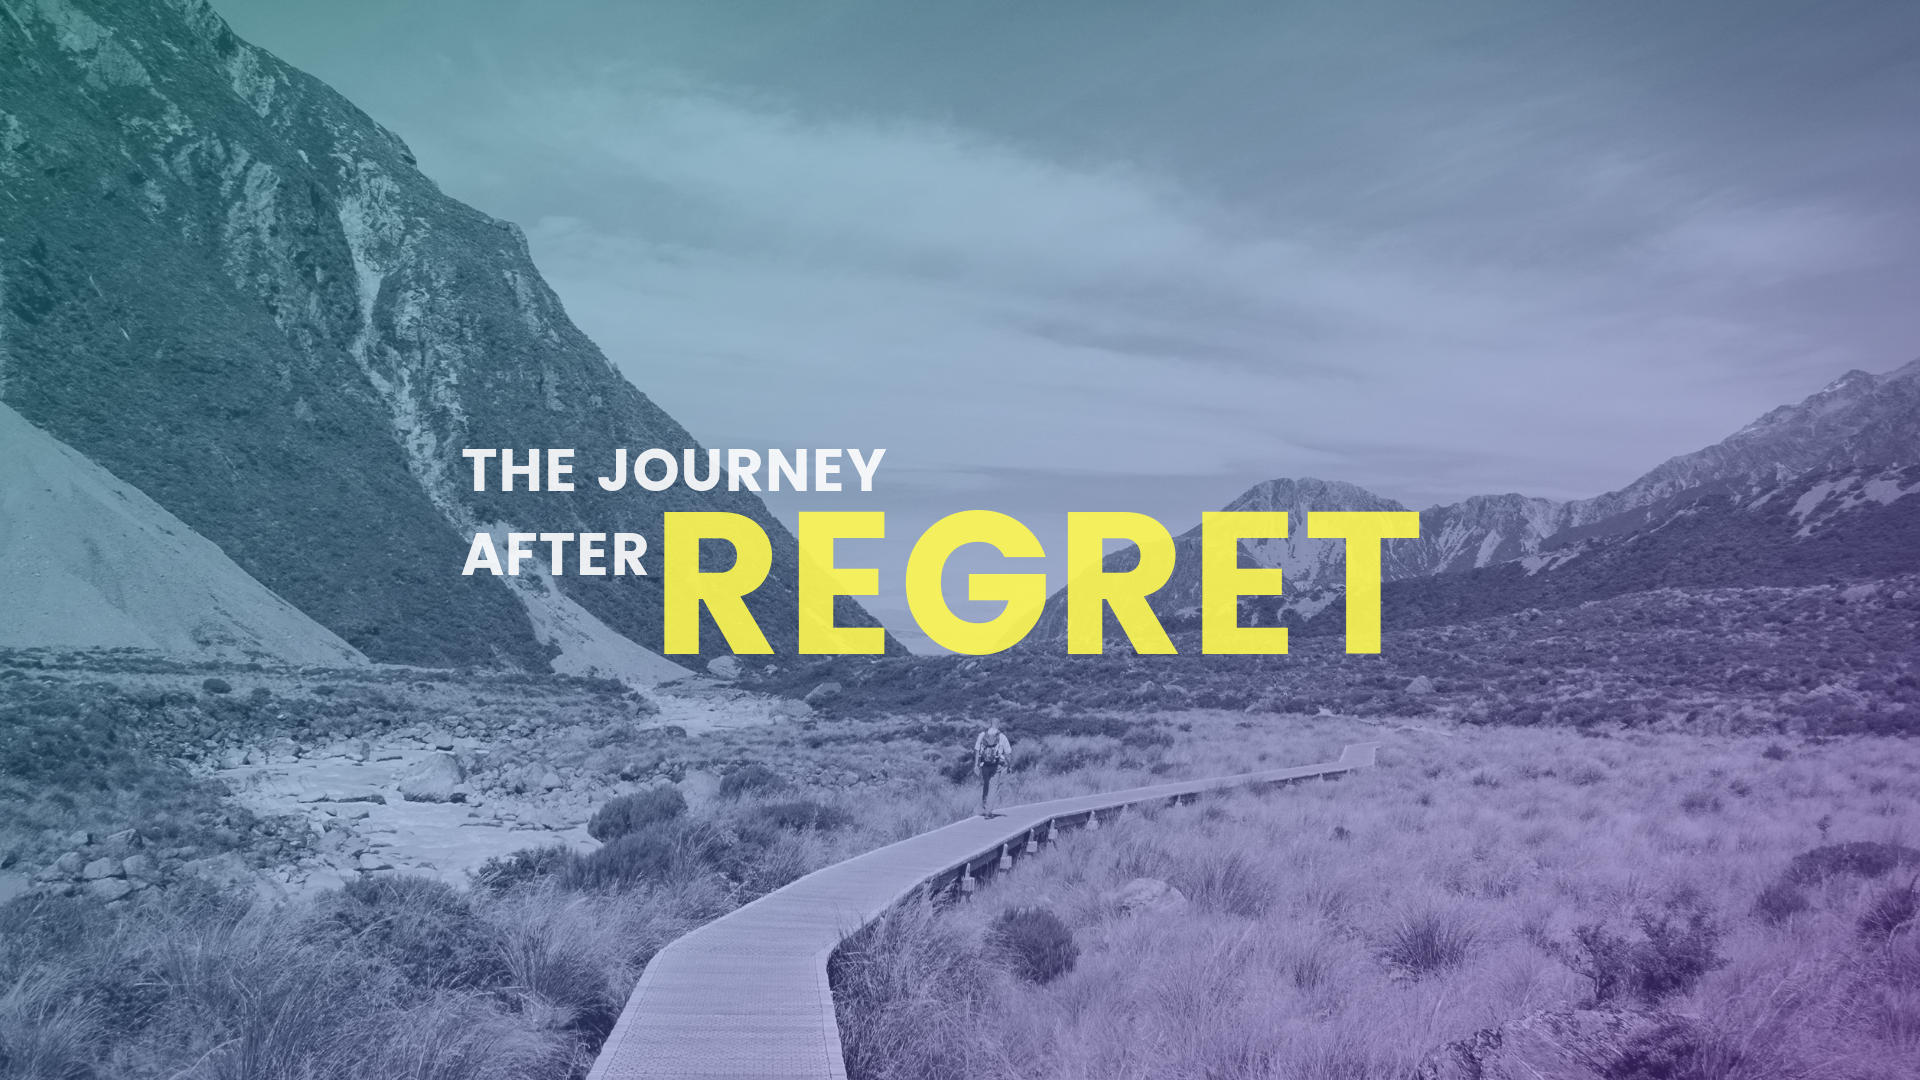 Baby Dedication/ The Journey After Regret